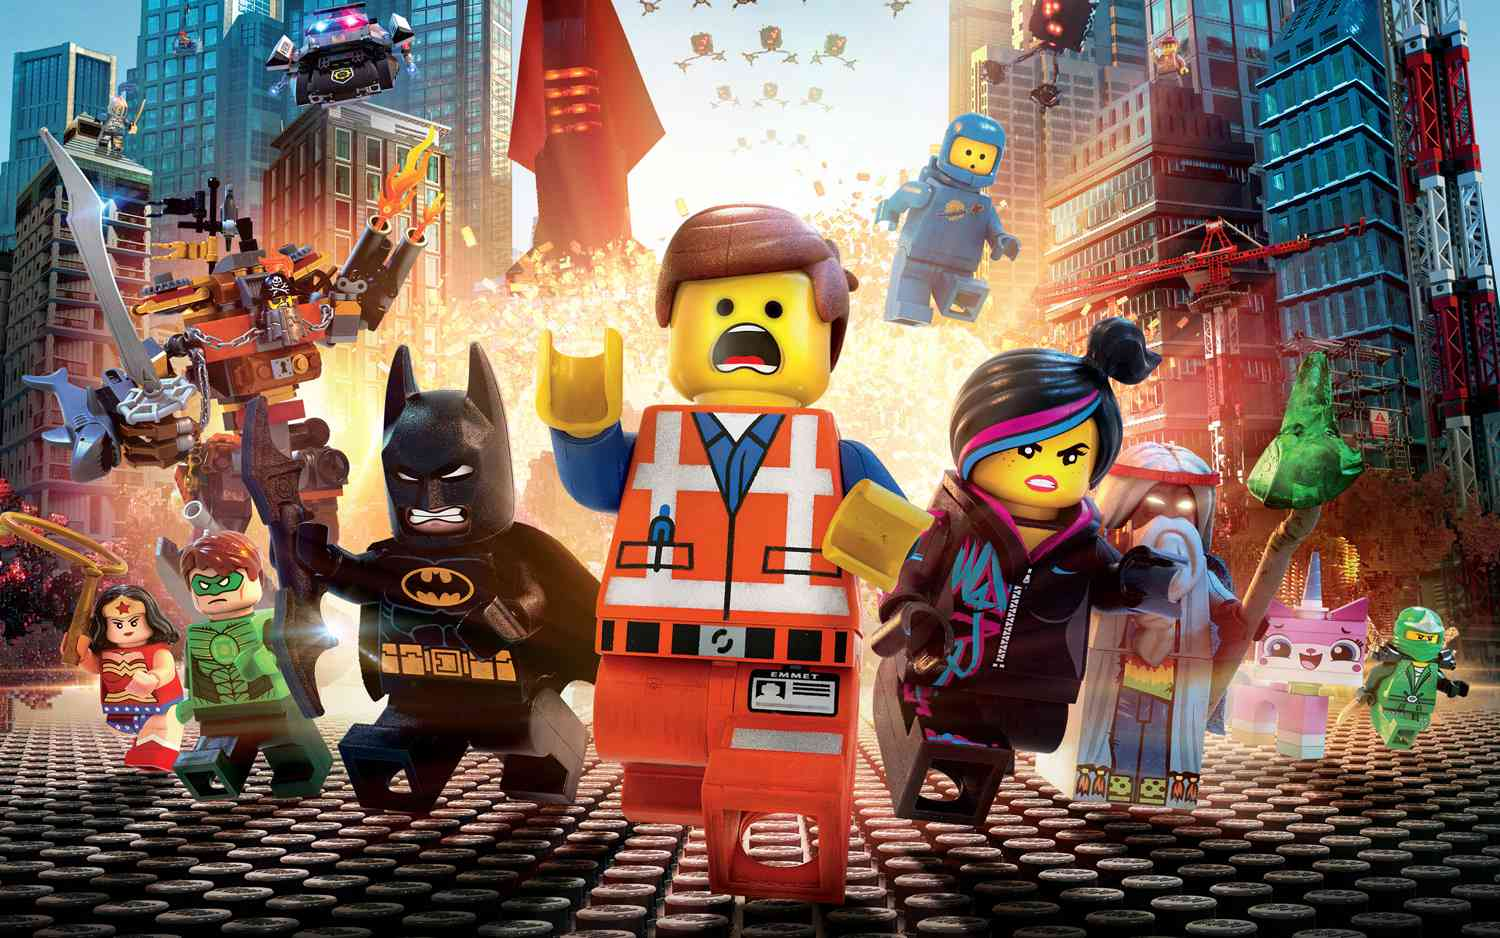 Theatrical release poster for The Lego Movie (2014)